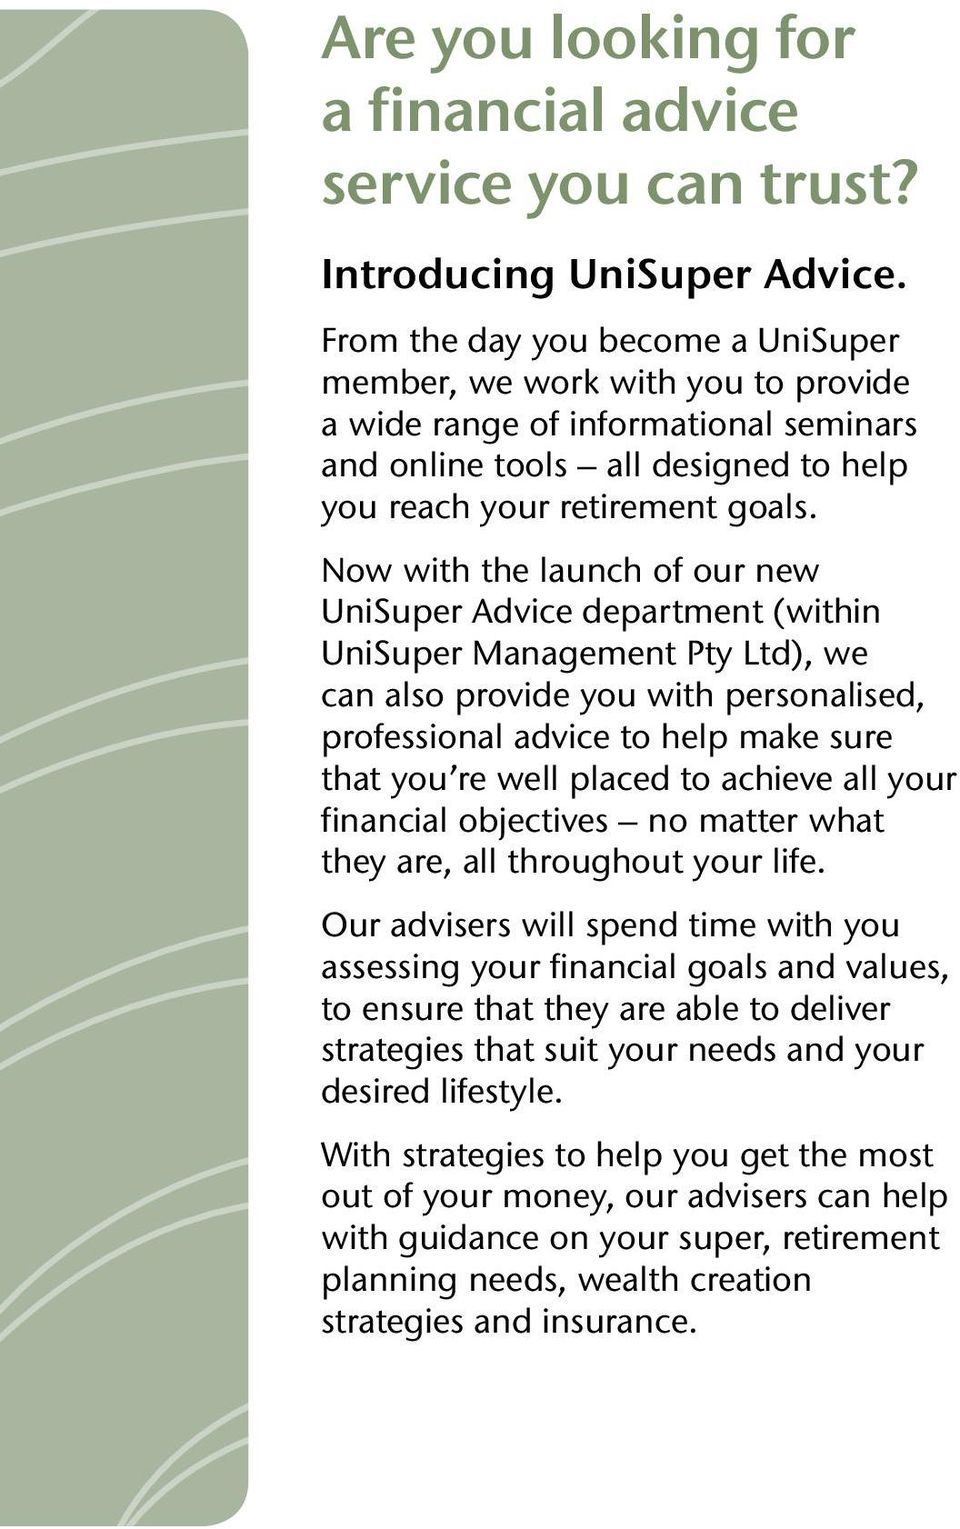 Now with the launch of our new UniSuper Advice department (within UniSuper Management Pty Ltd), we can also provide you with personalised, professional advice to help make sure that you re well